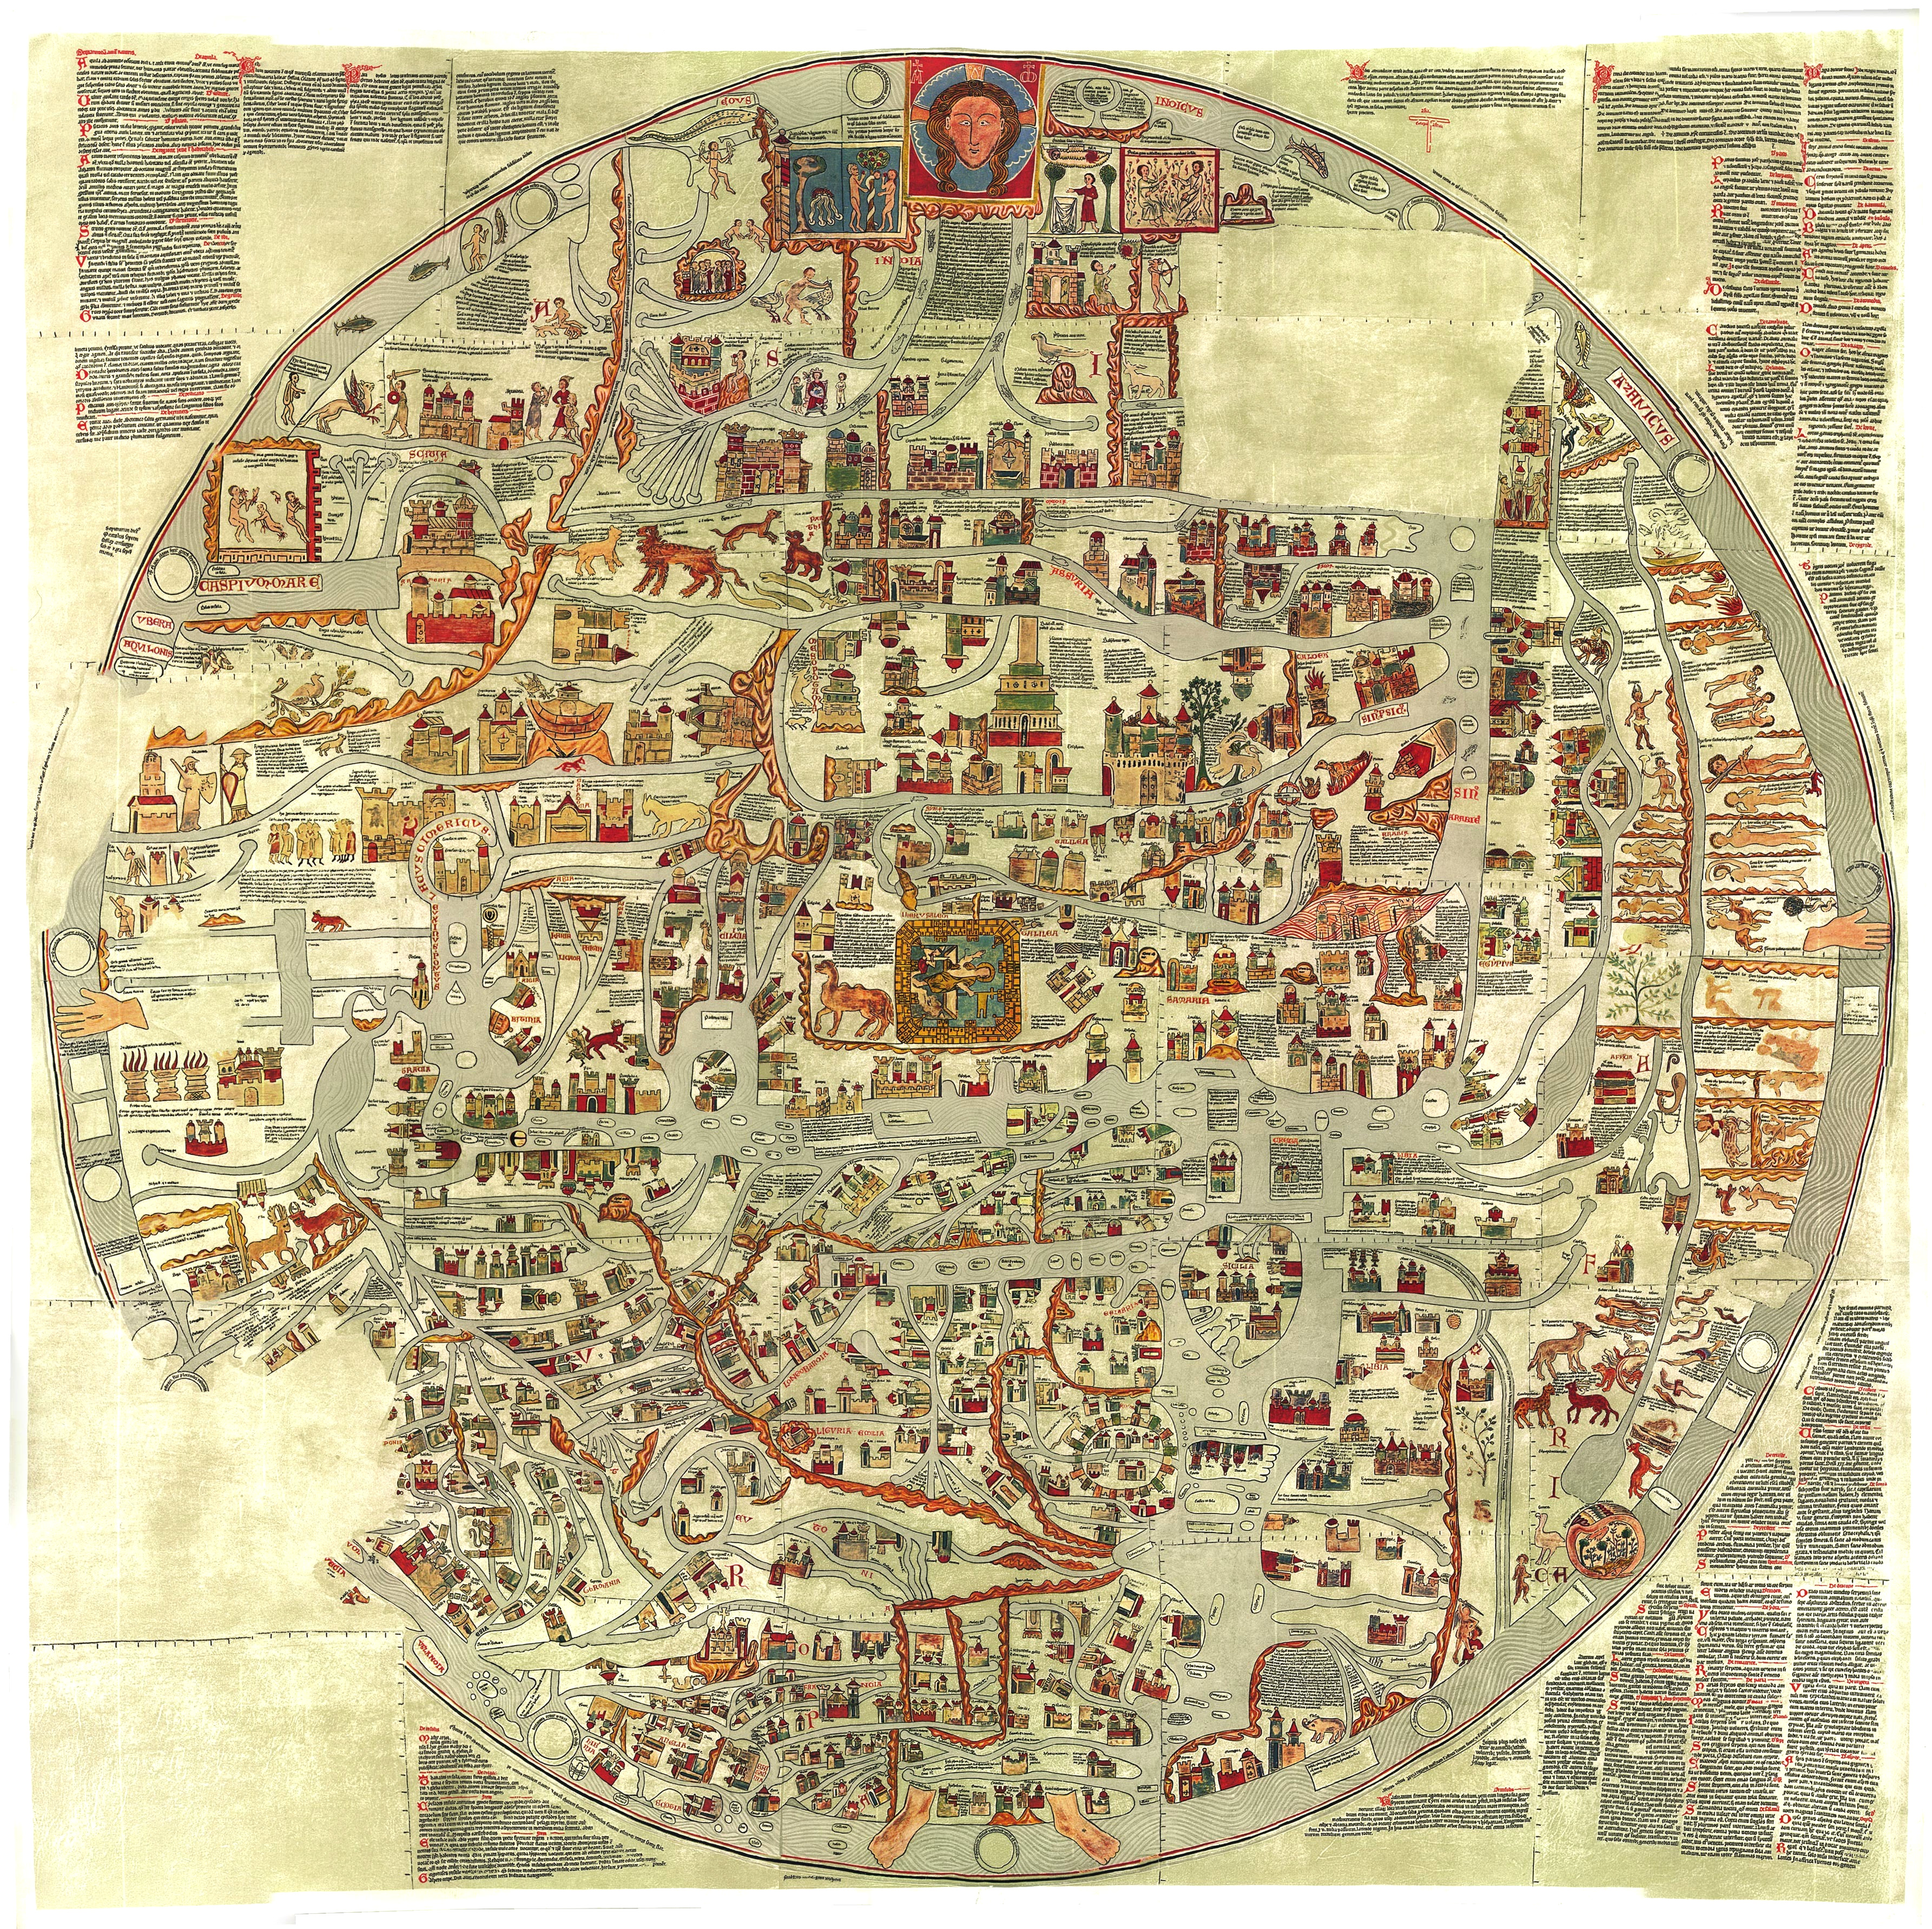 Ebsorfer Stich, example of a Mappa Mundi, a medieval European map of the world